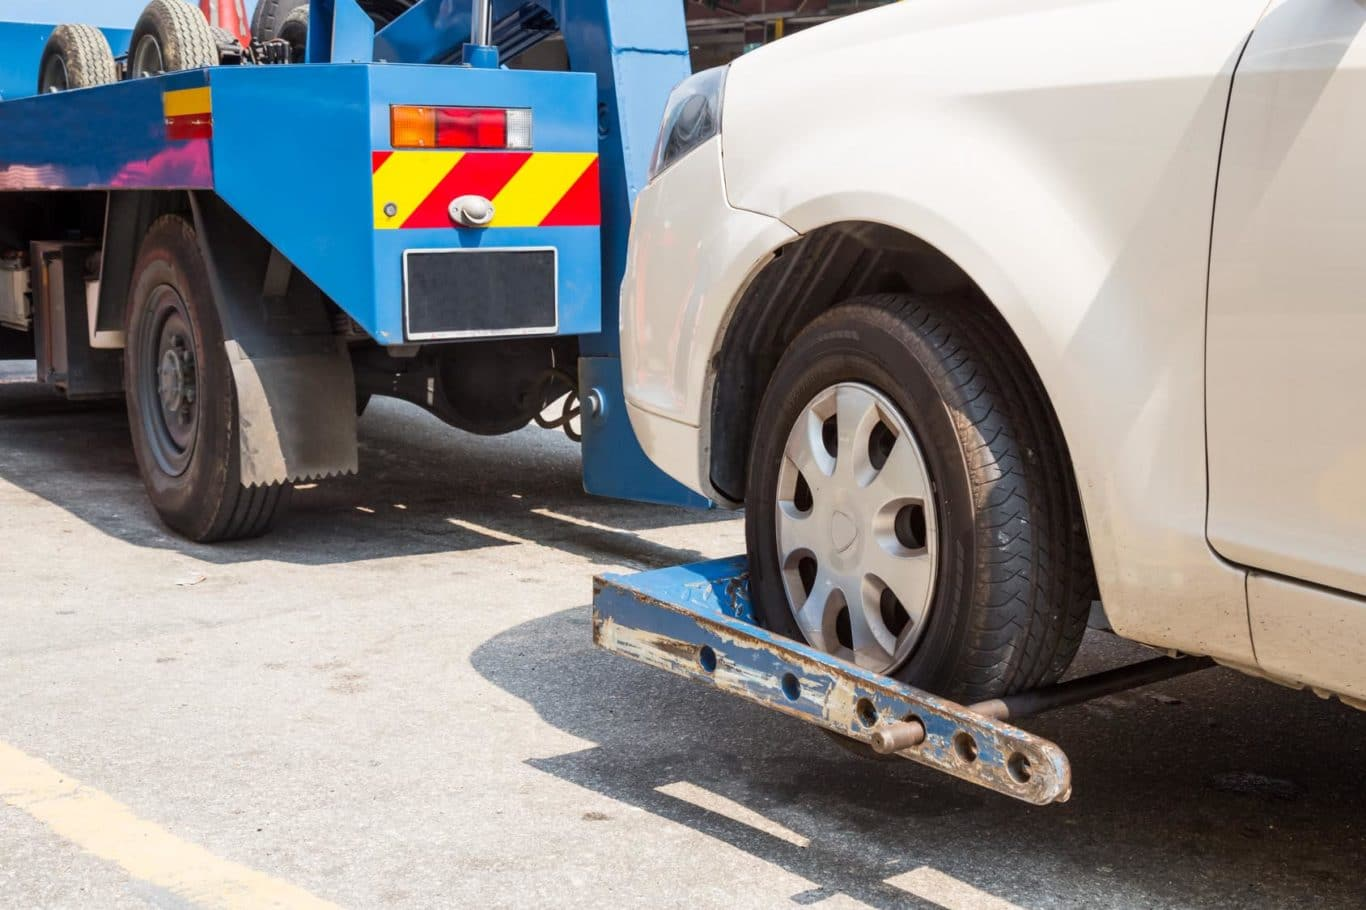 Ballinteer expert Towing And Recovery Dublin services